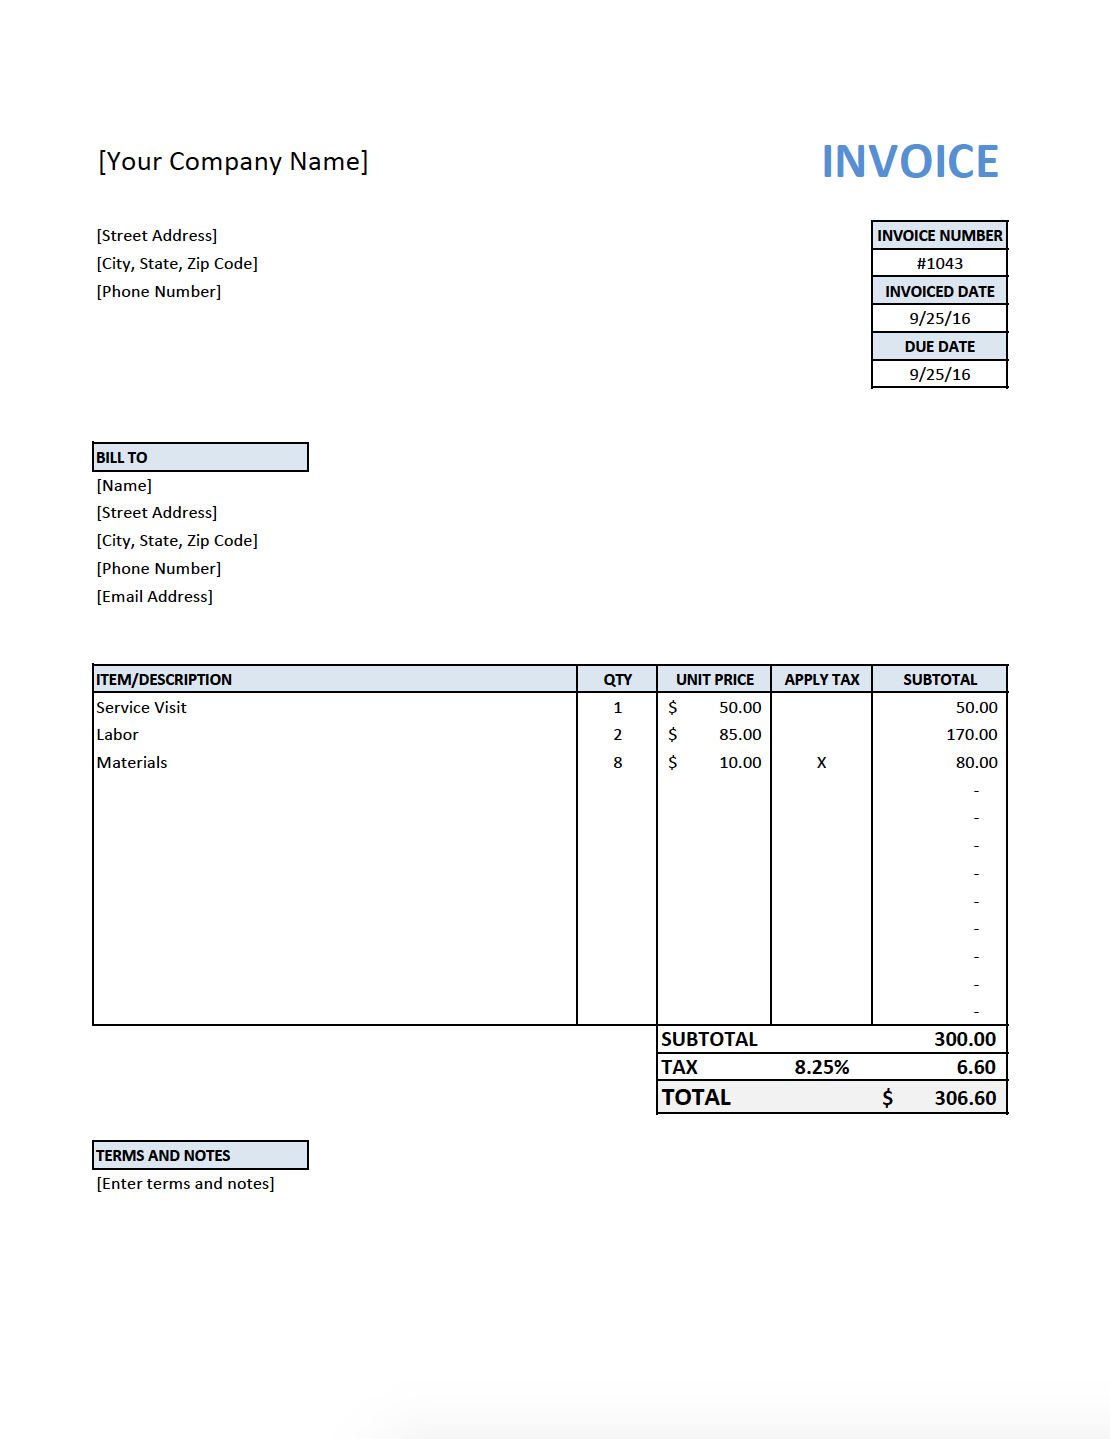 Free Invoice Template For Contractors Electrician Quickbooks Contractor Remodeling Renovating R Estimate Template Invoice Template Invoice Template Word